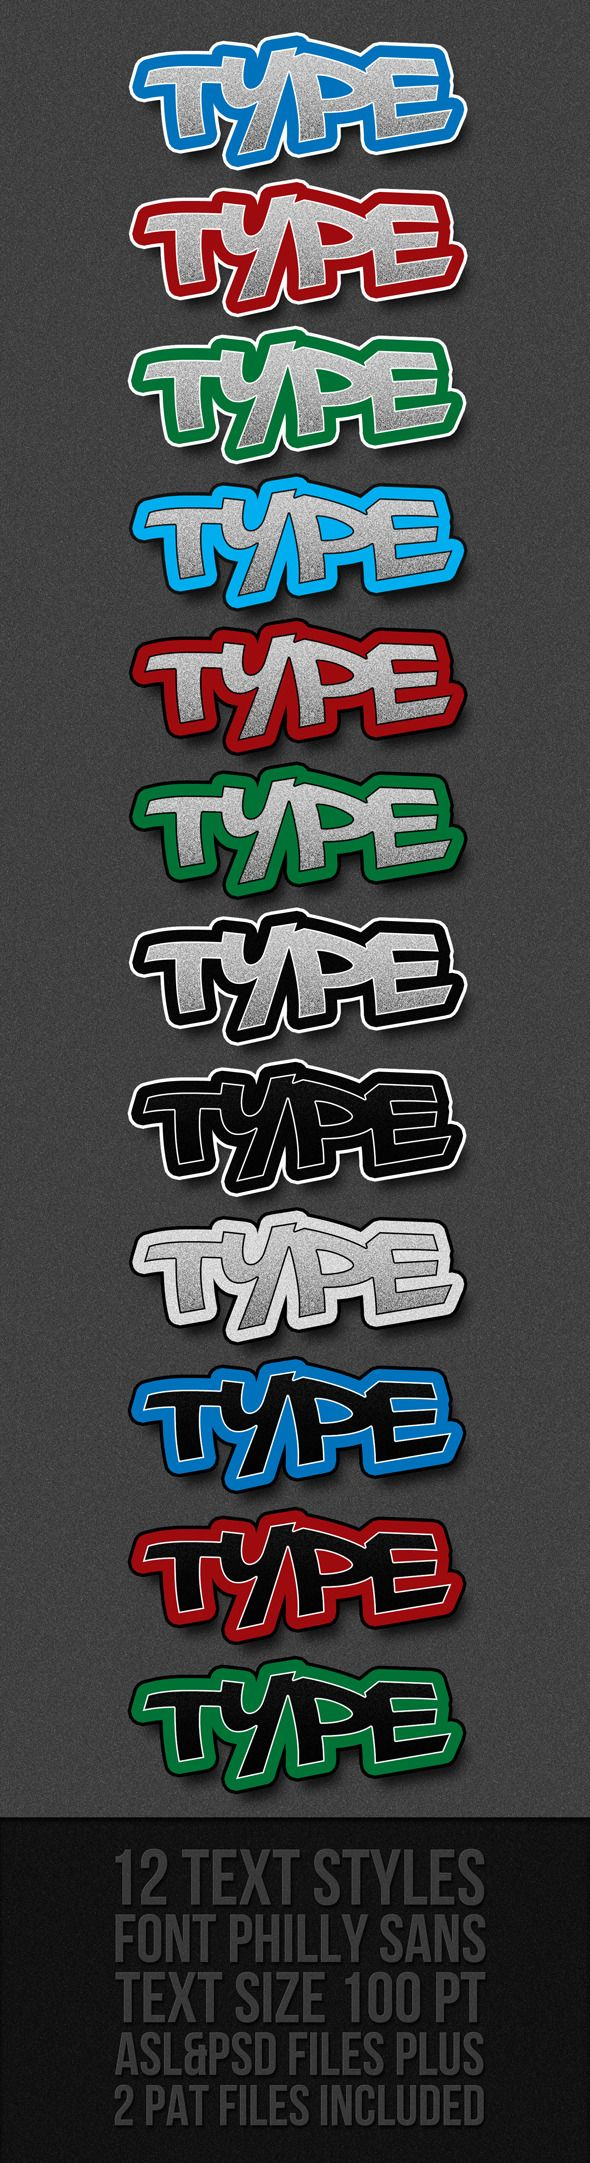 Graffiti Text Styles — Layered PSD #layer styles #white • Available here → https://graphicriver.net/item/graffiti-text-styles/301630?ref=pxcr